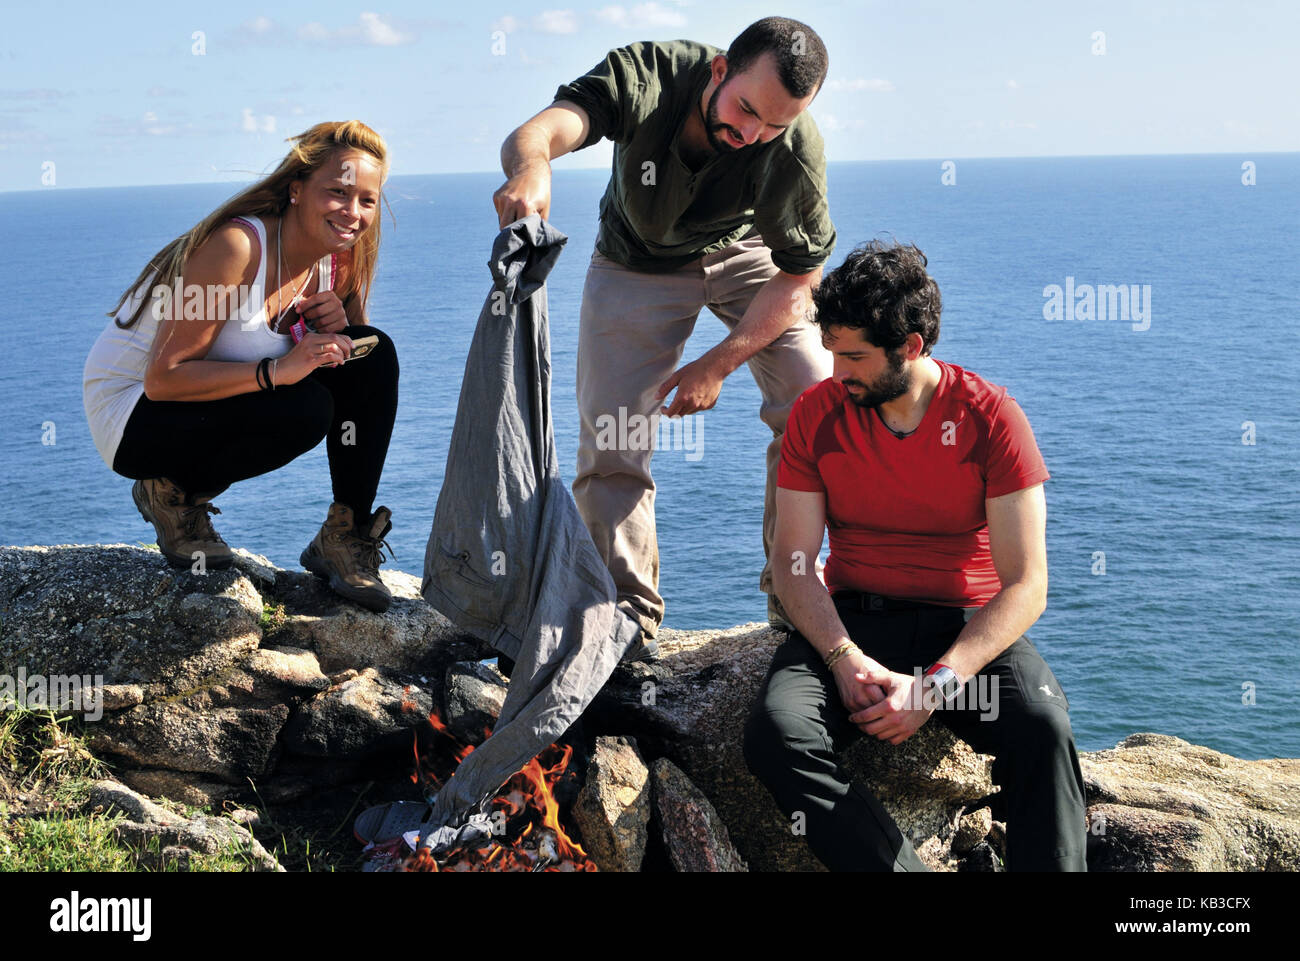 Spain, Way of St. James, pilgrim's friends while ritual combustion of the journeyling clothes in the cape Fisterra, - Stock Image